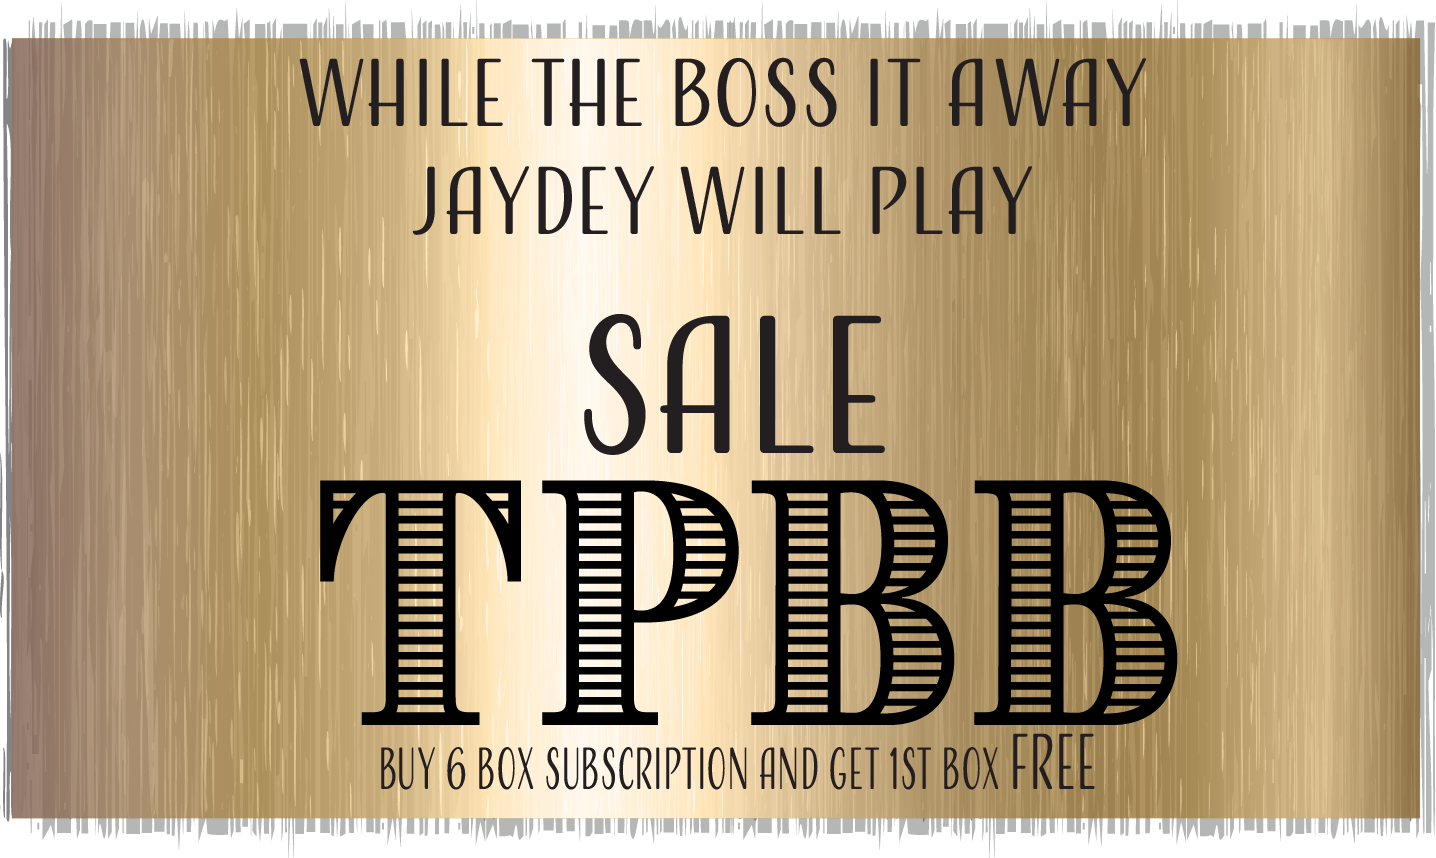 While to Boss is Away SALE - TPBB